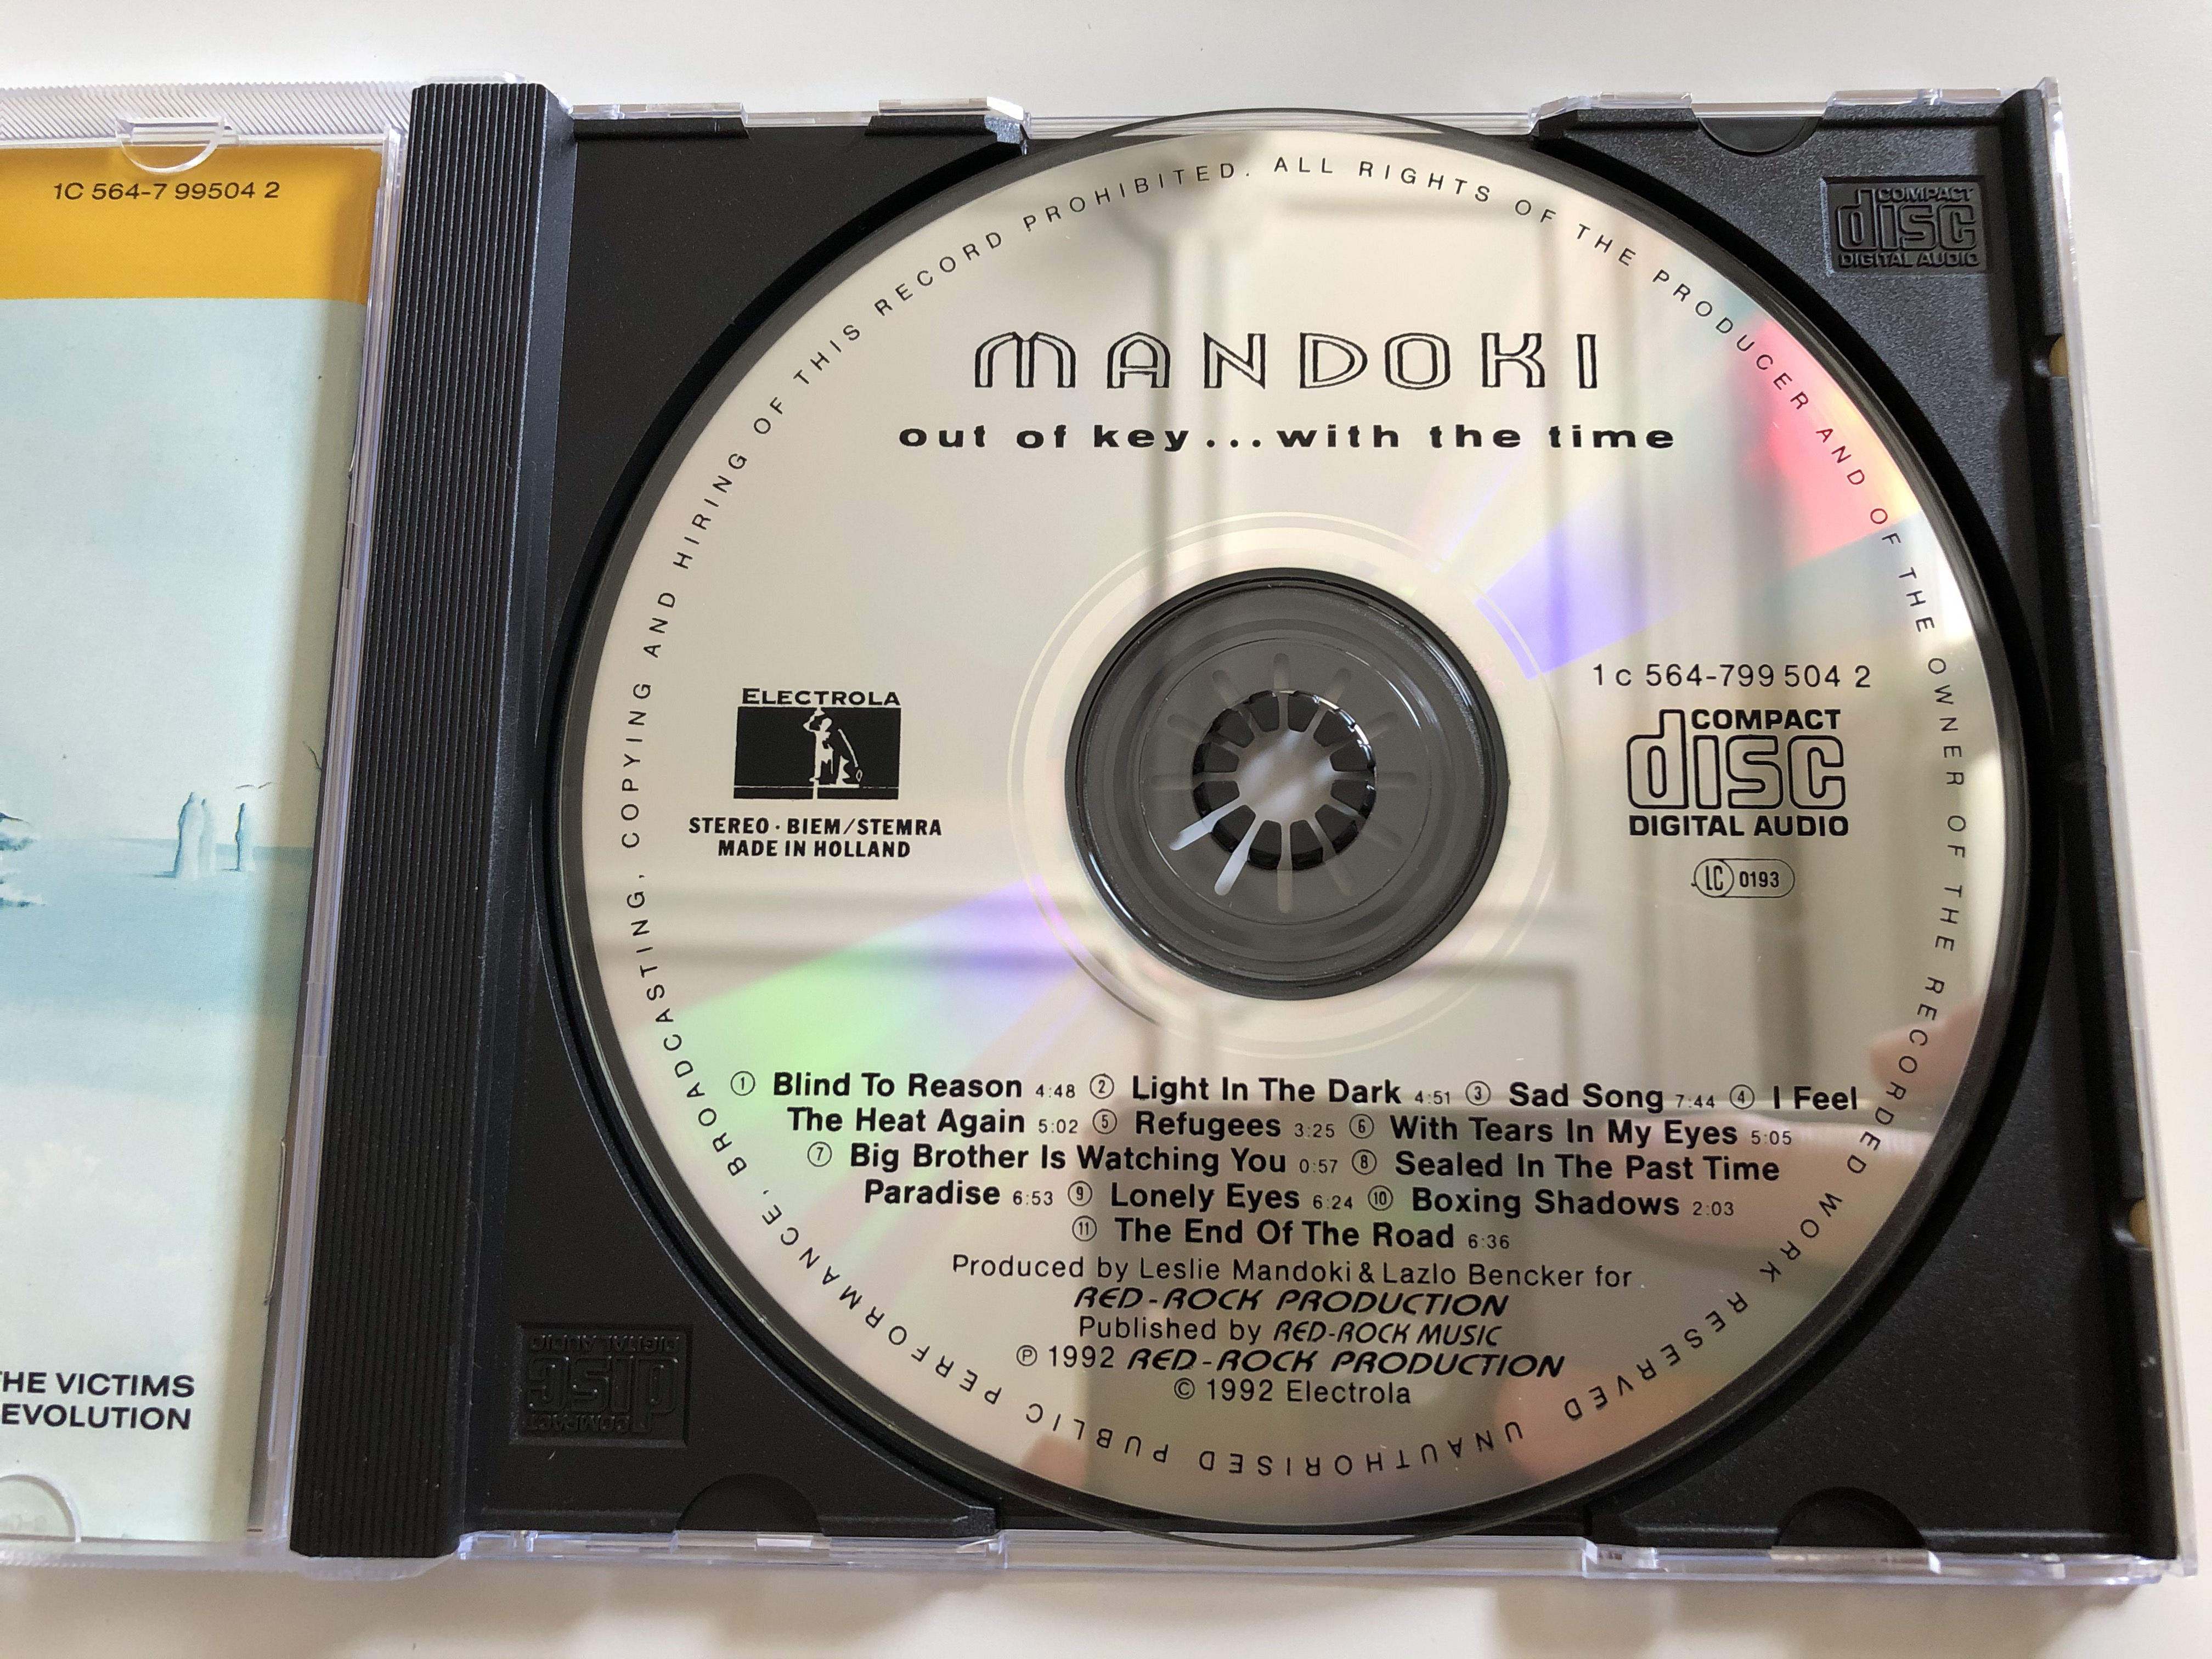 mandoki-out-of-key...-with-the-time-electrola-audio-cd-1992-1c-564-799-504-2-8-.jpg